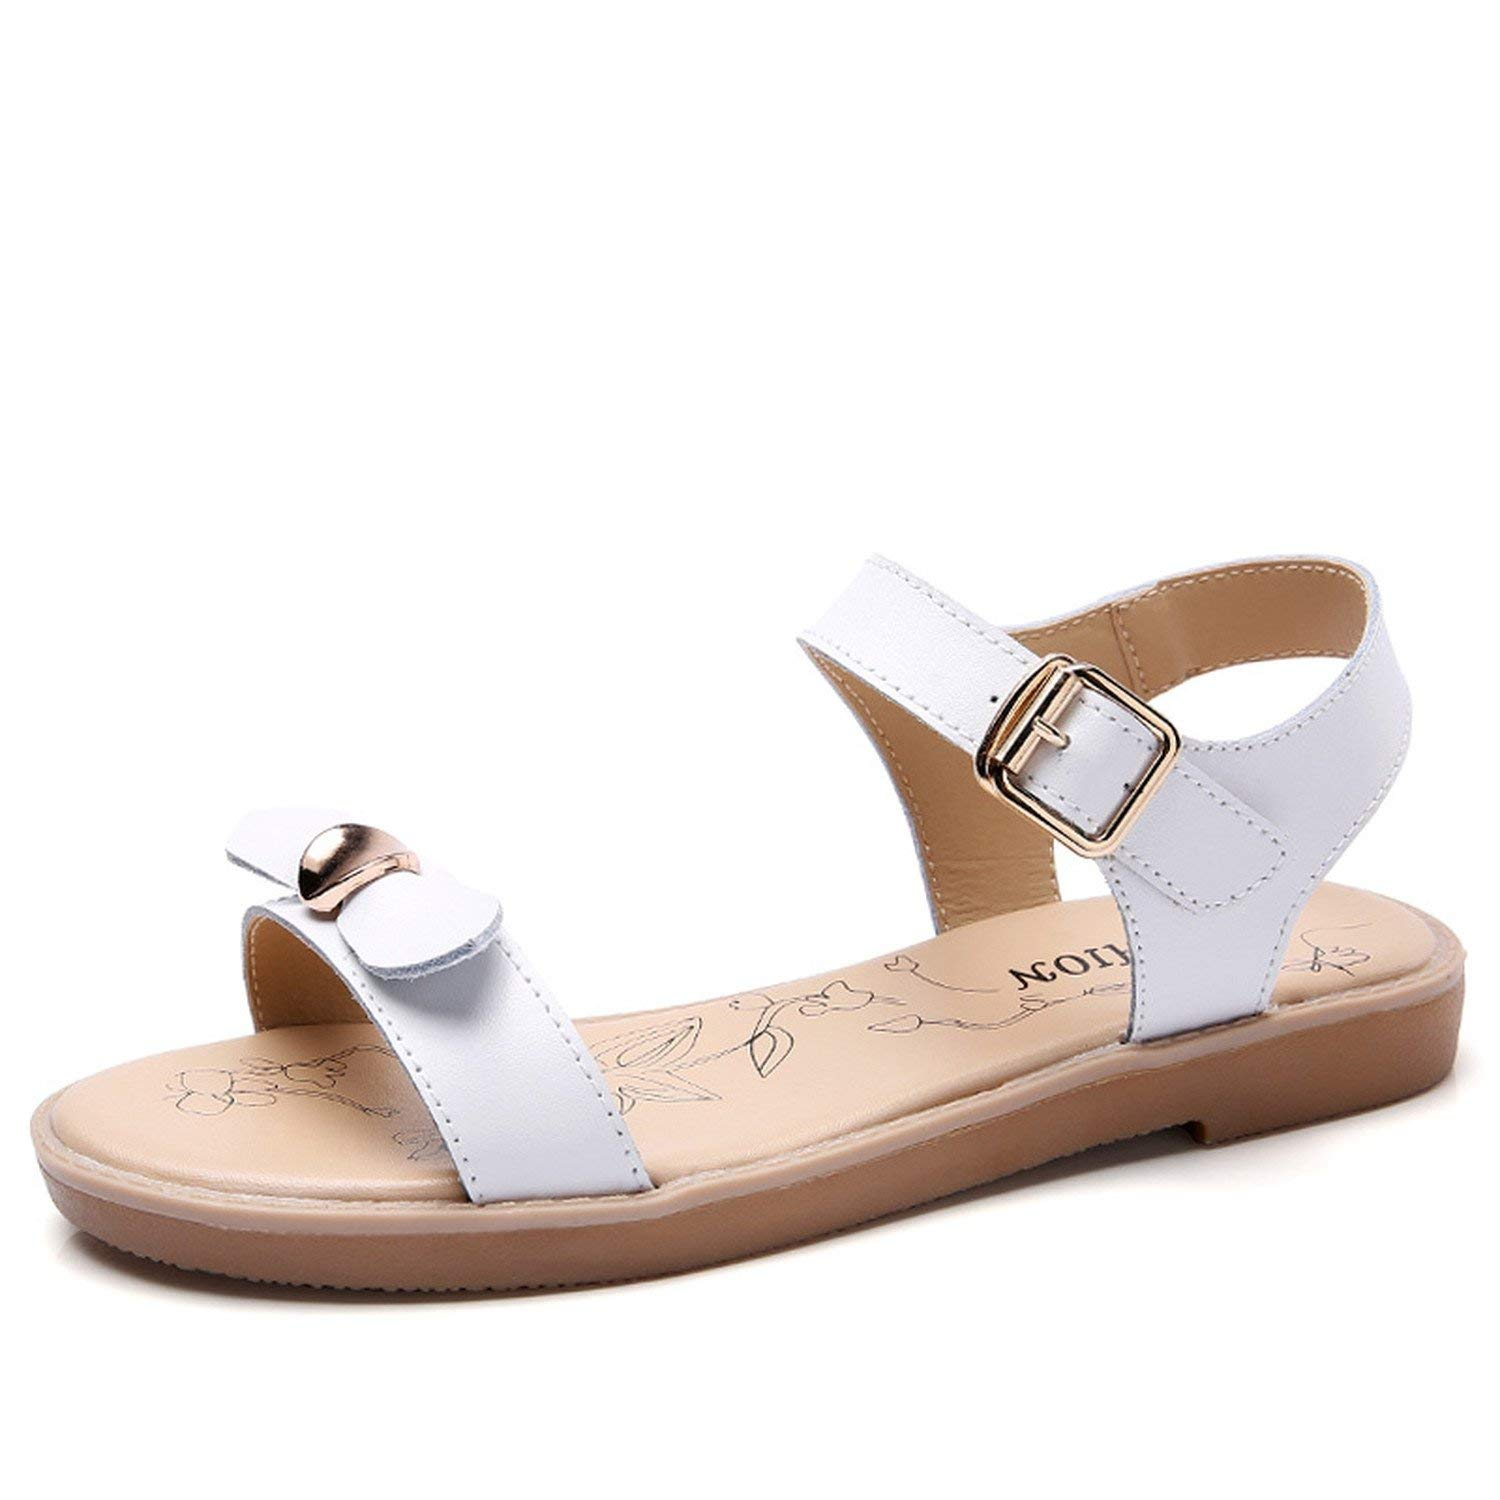 ecff79bde6d8dc Luck Man Open Toe Cowhide Women Flat Sandals Summer Flats Shoes Sweet Bow  Tie Open Toe